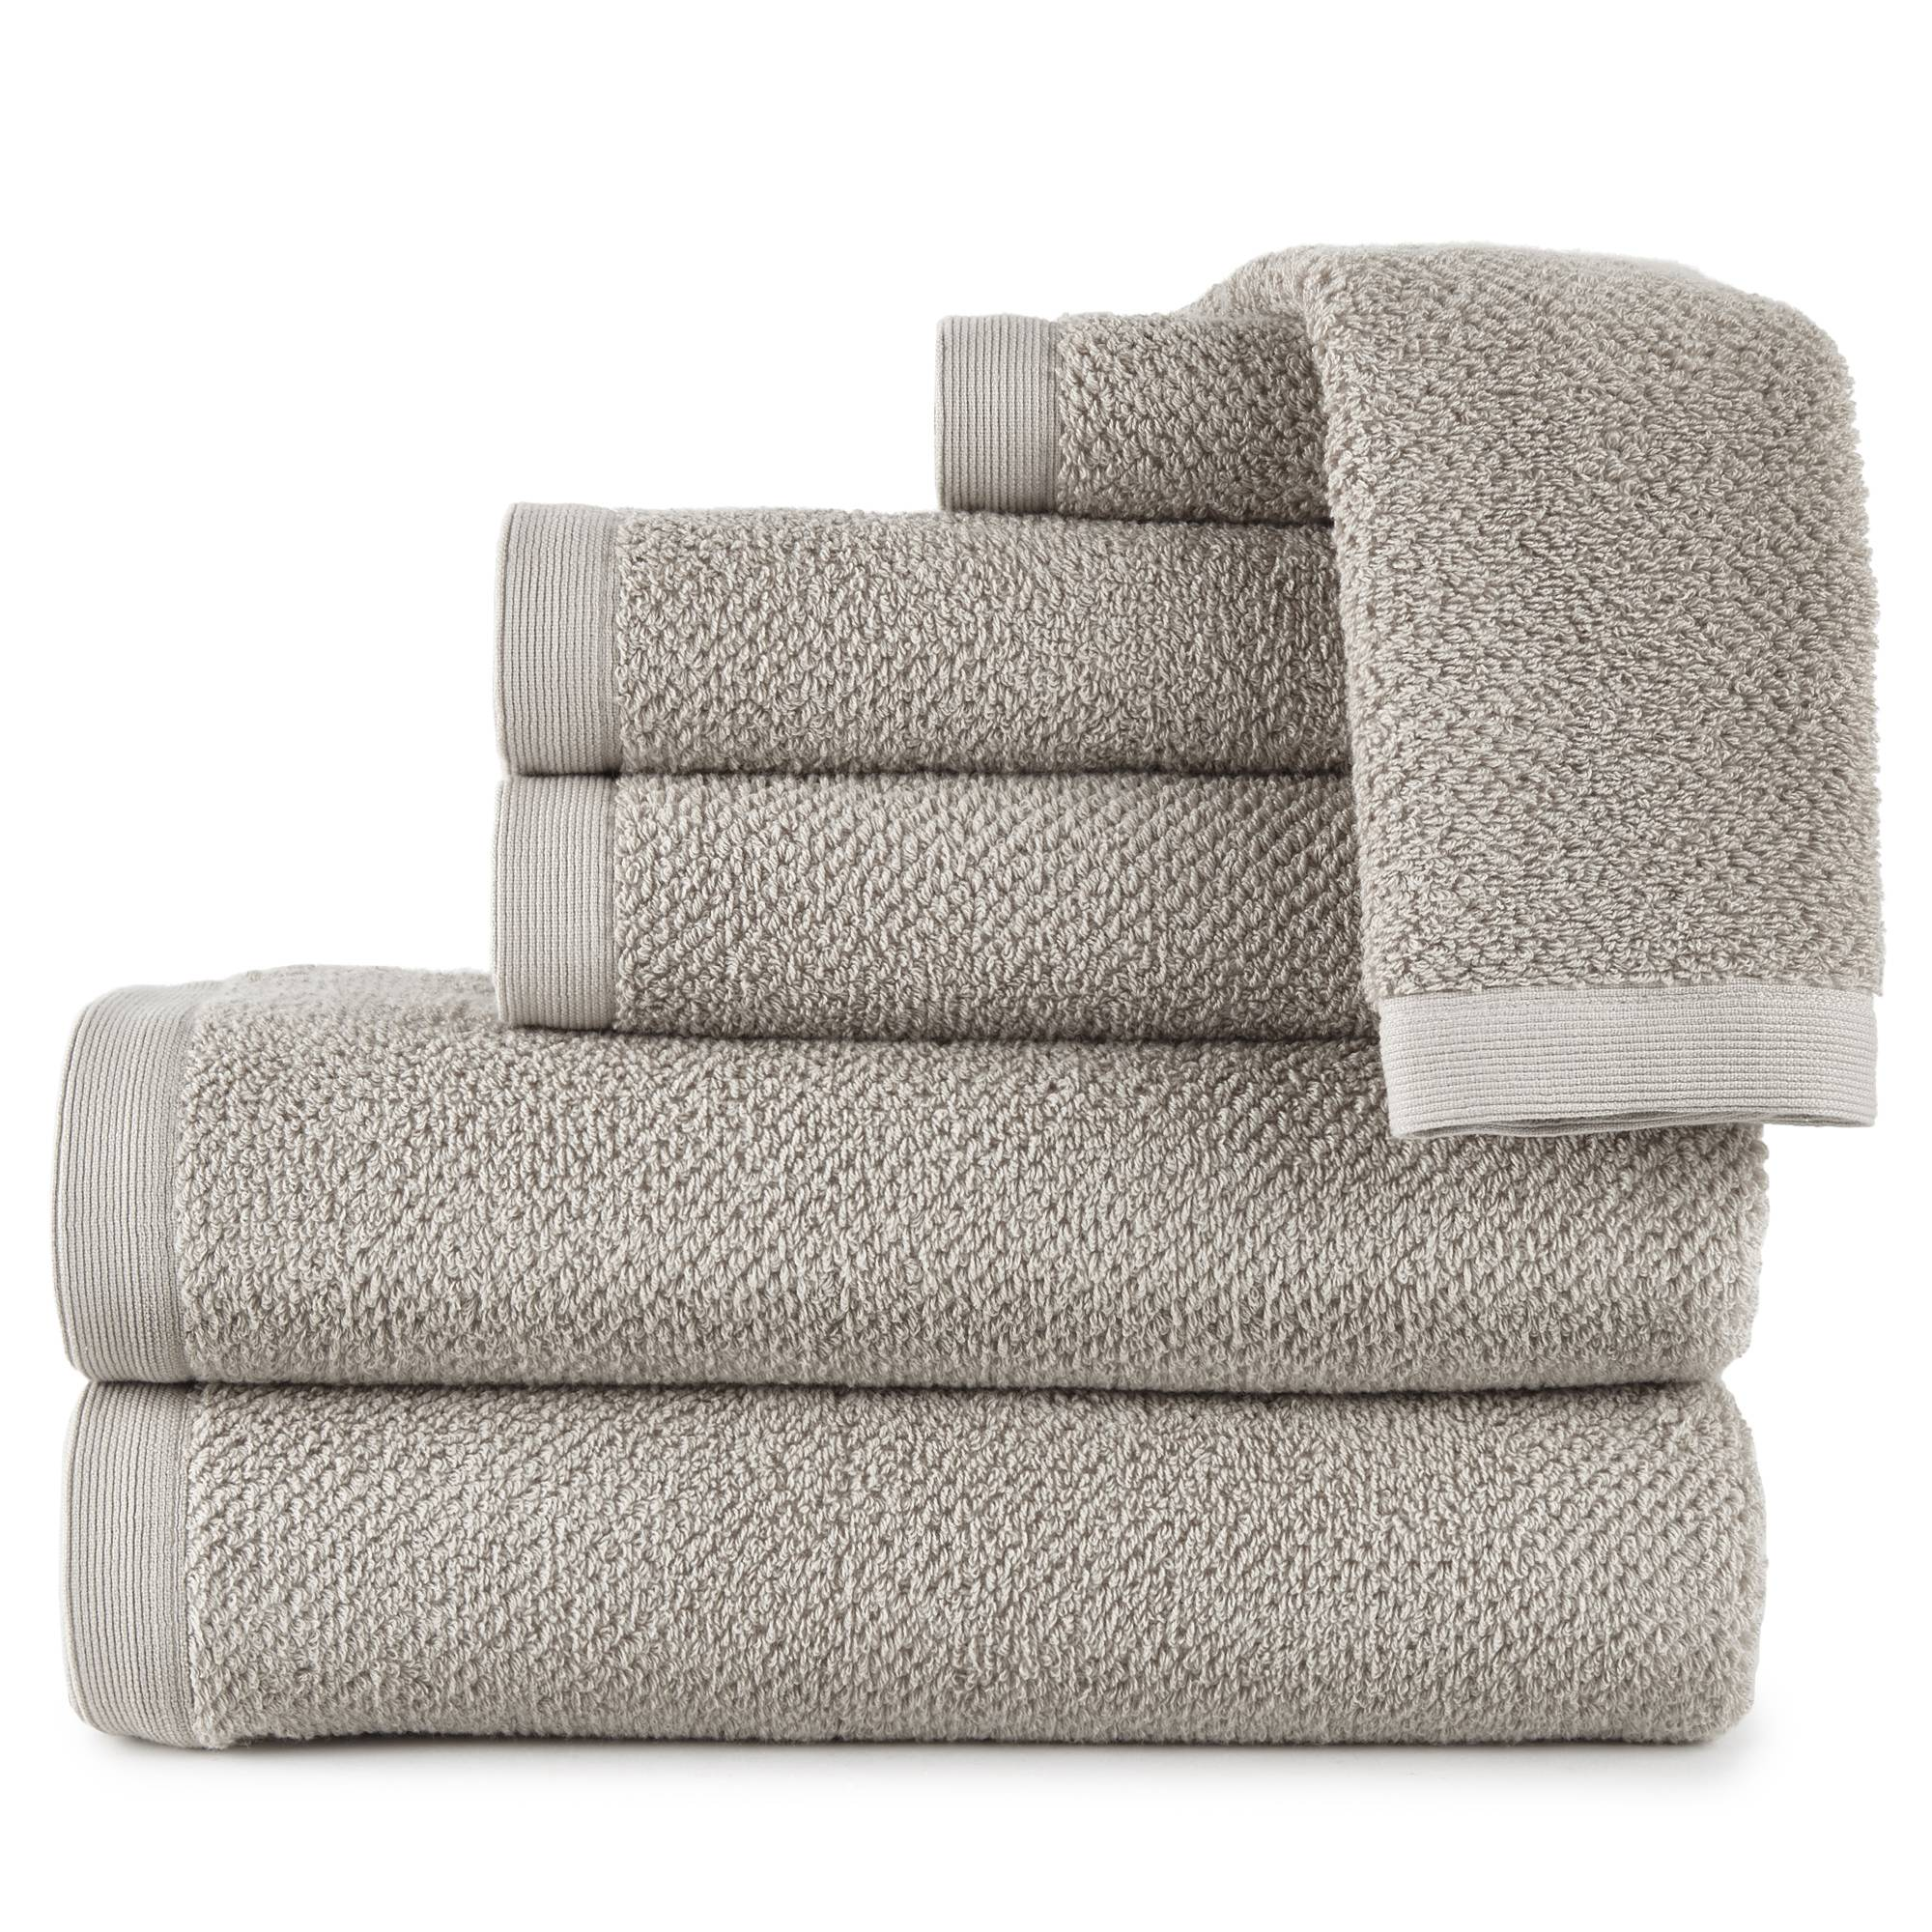 Discounted Luxury Bath Towels Bath Robes Shower Curtains Peacock Alley